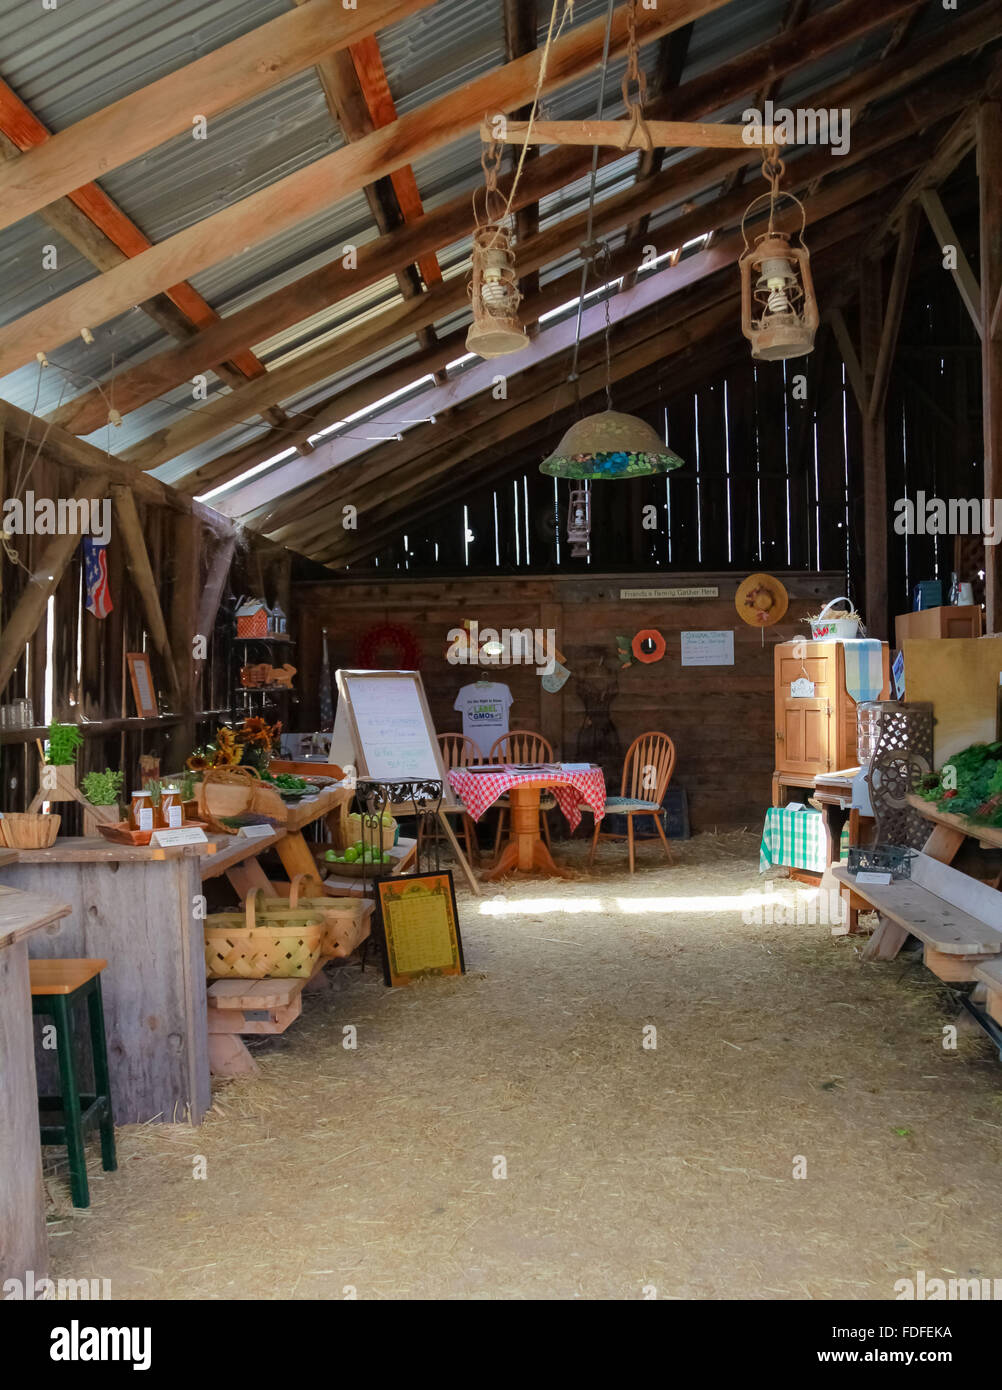 Farmers Market Inside A Small Furnished Barn With Various Organic Produce For Sale And Sunshine Filtering